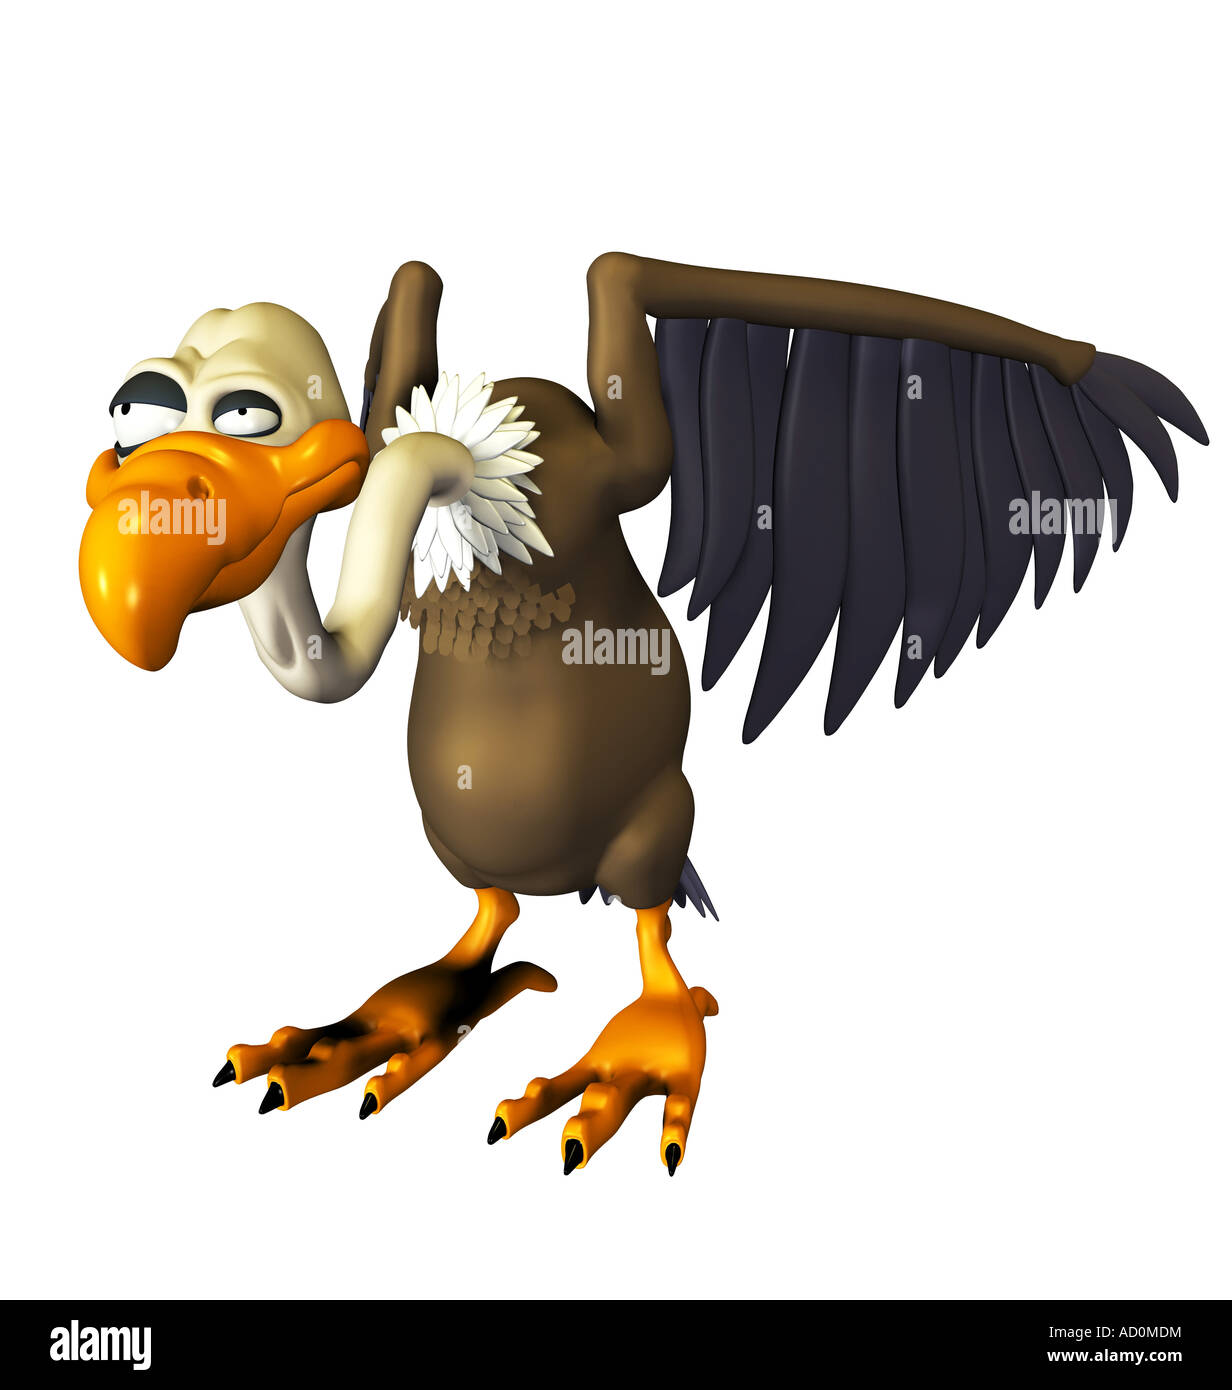 vulture - Stock Image